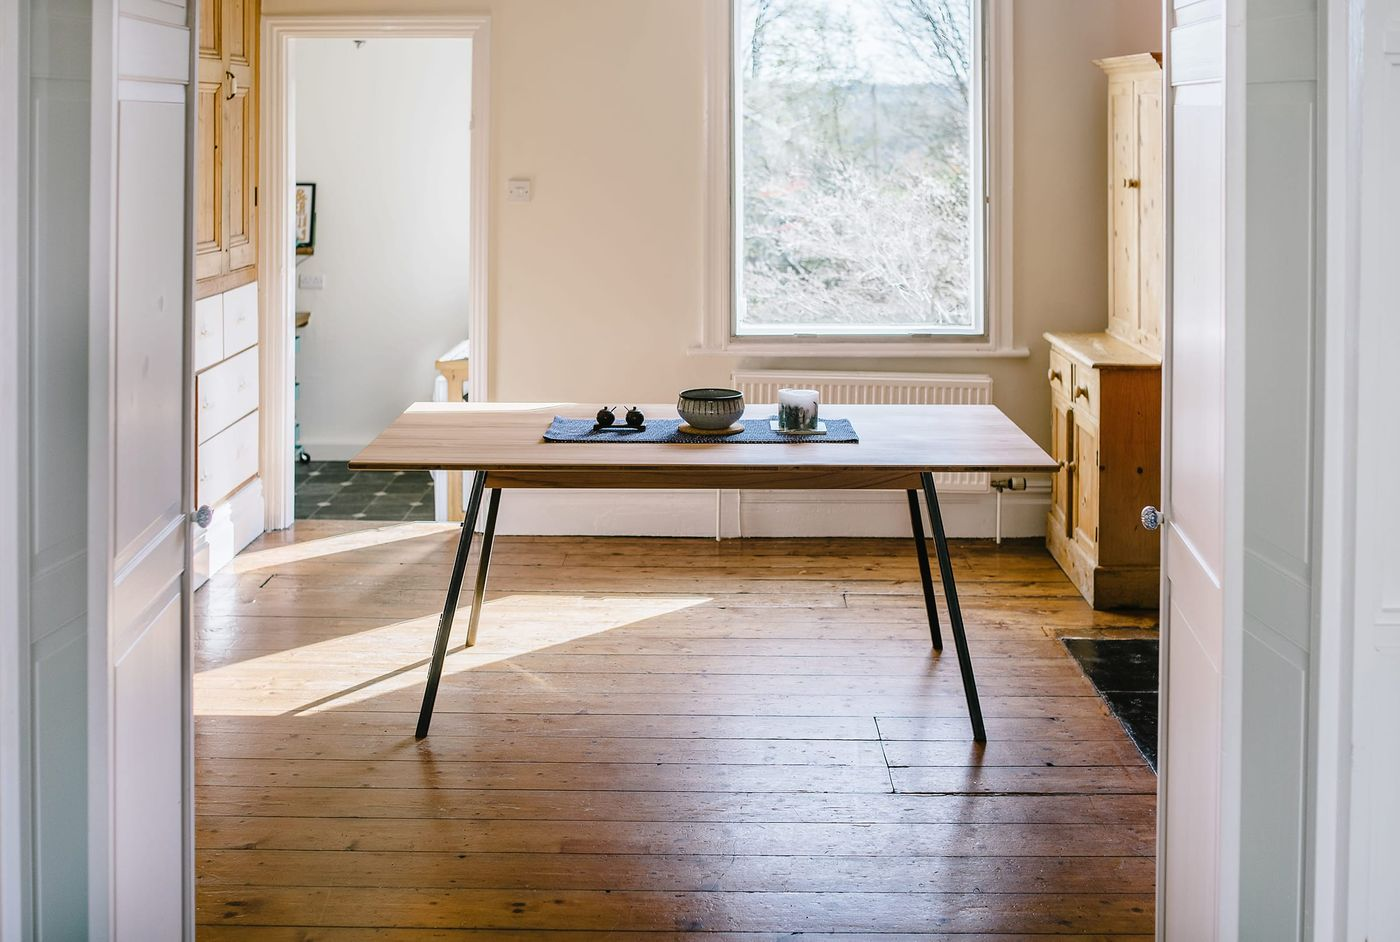 Bespoke dining table designed and manufactured by From Works of steamed beech timber table top and compound angle mild steel legs.